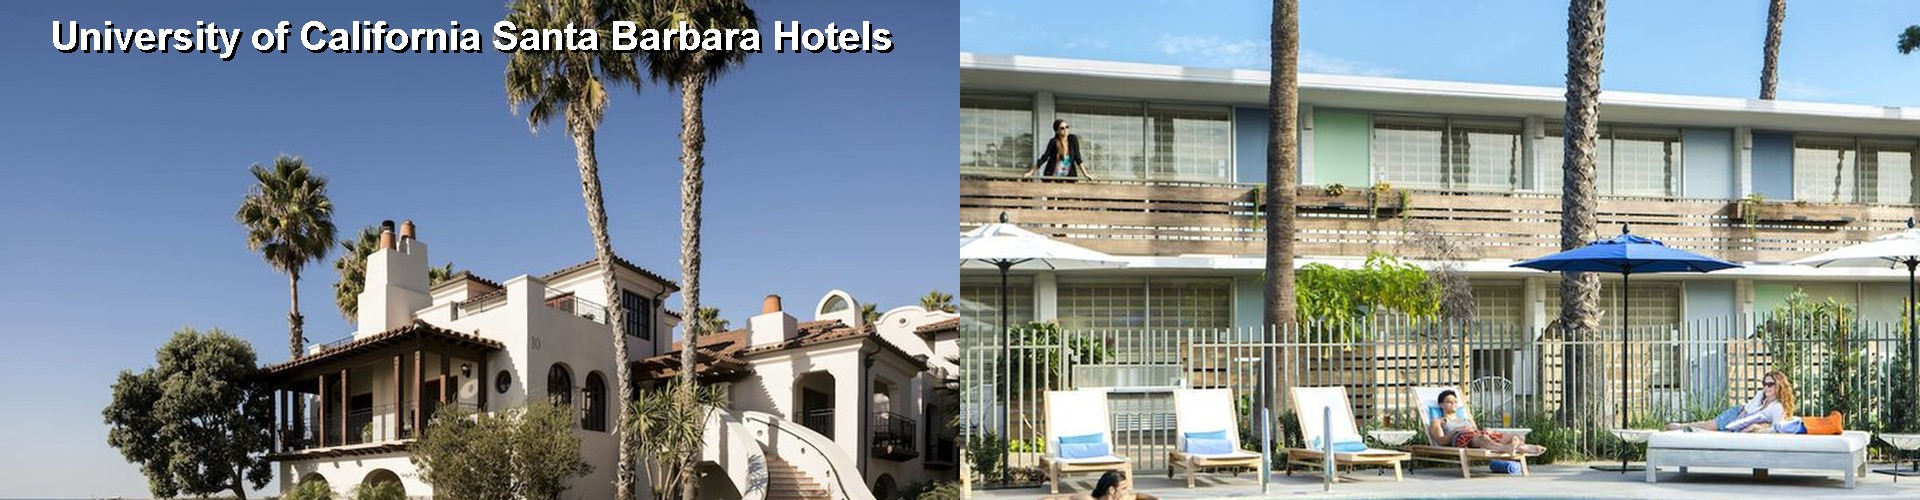 5 Best Hotels near University of California Santa Barbara